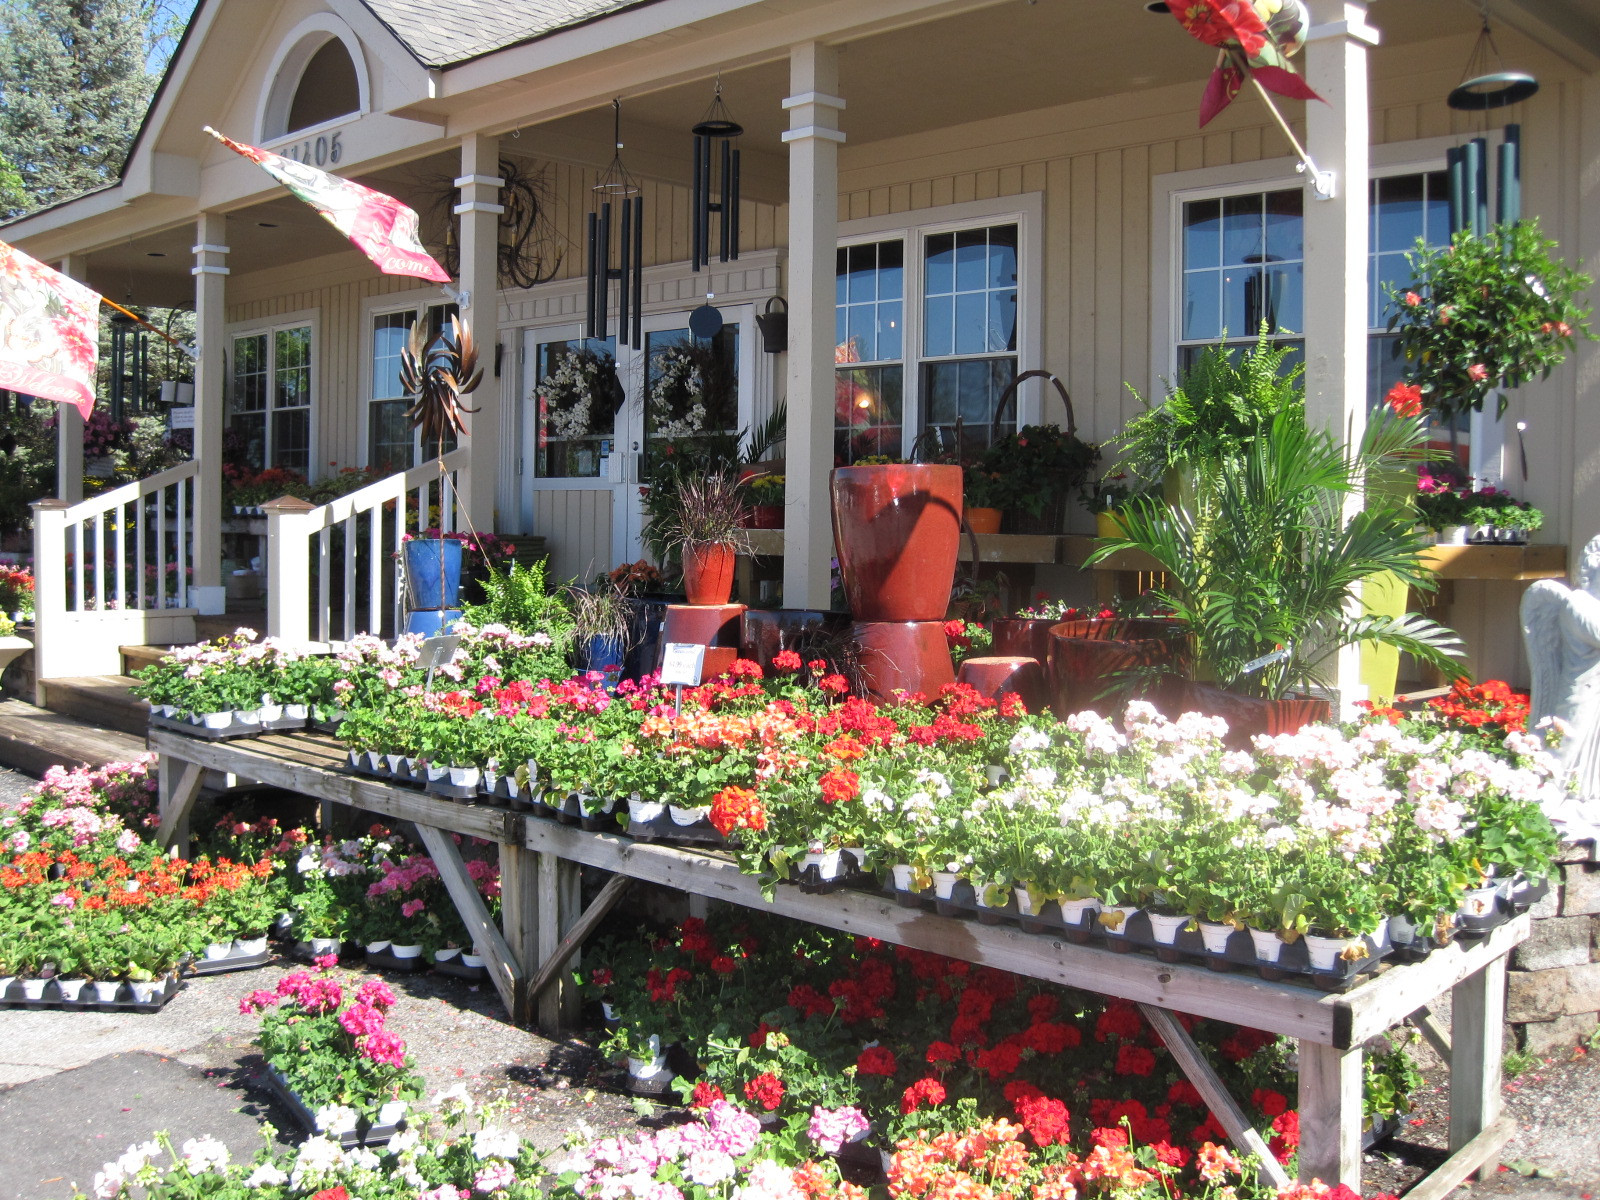 Garden Center Allisonville Nursery